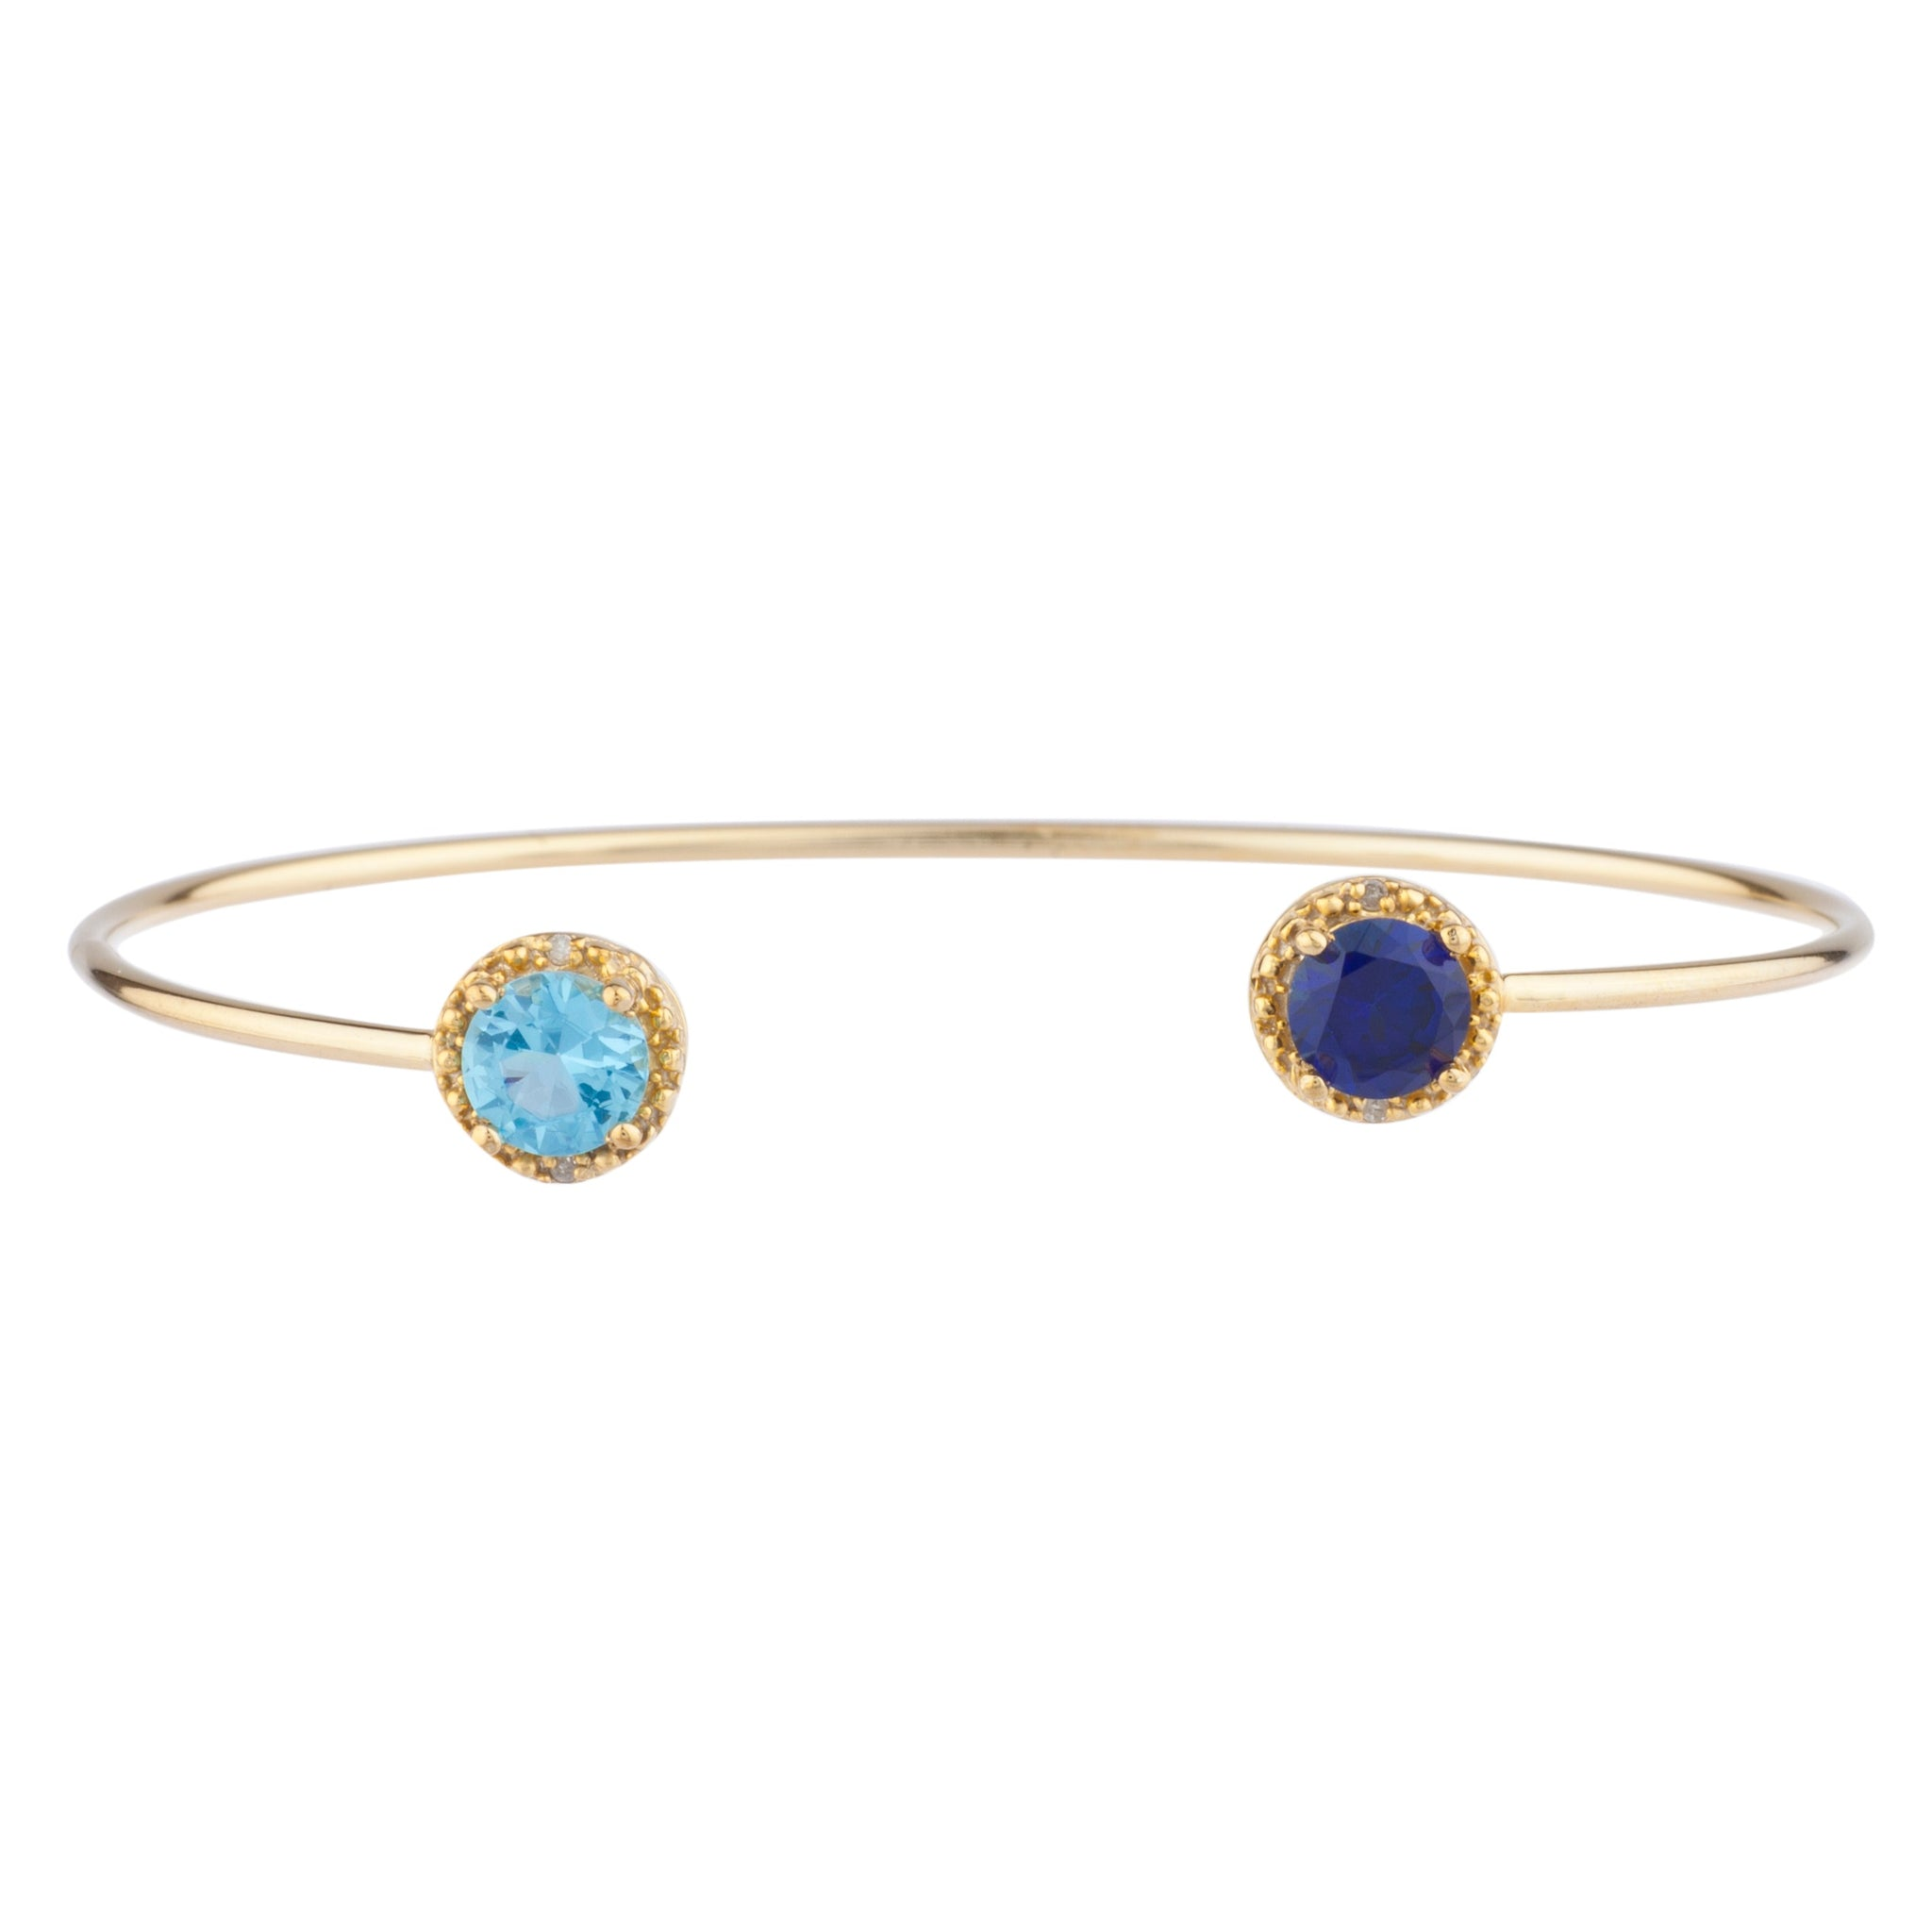 Blue Sapphire & Blue Topaz Diamond Bangle Round Bracelet 14Kt Yellow Gold Plated Over .925 Sterling Silver